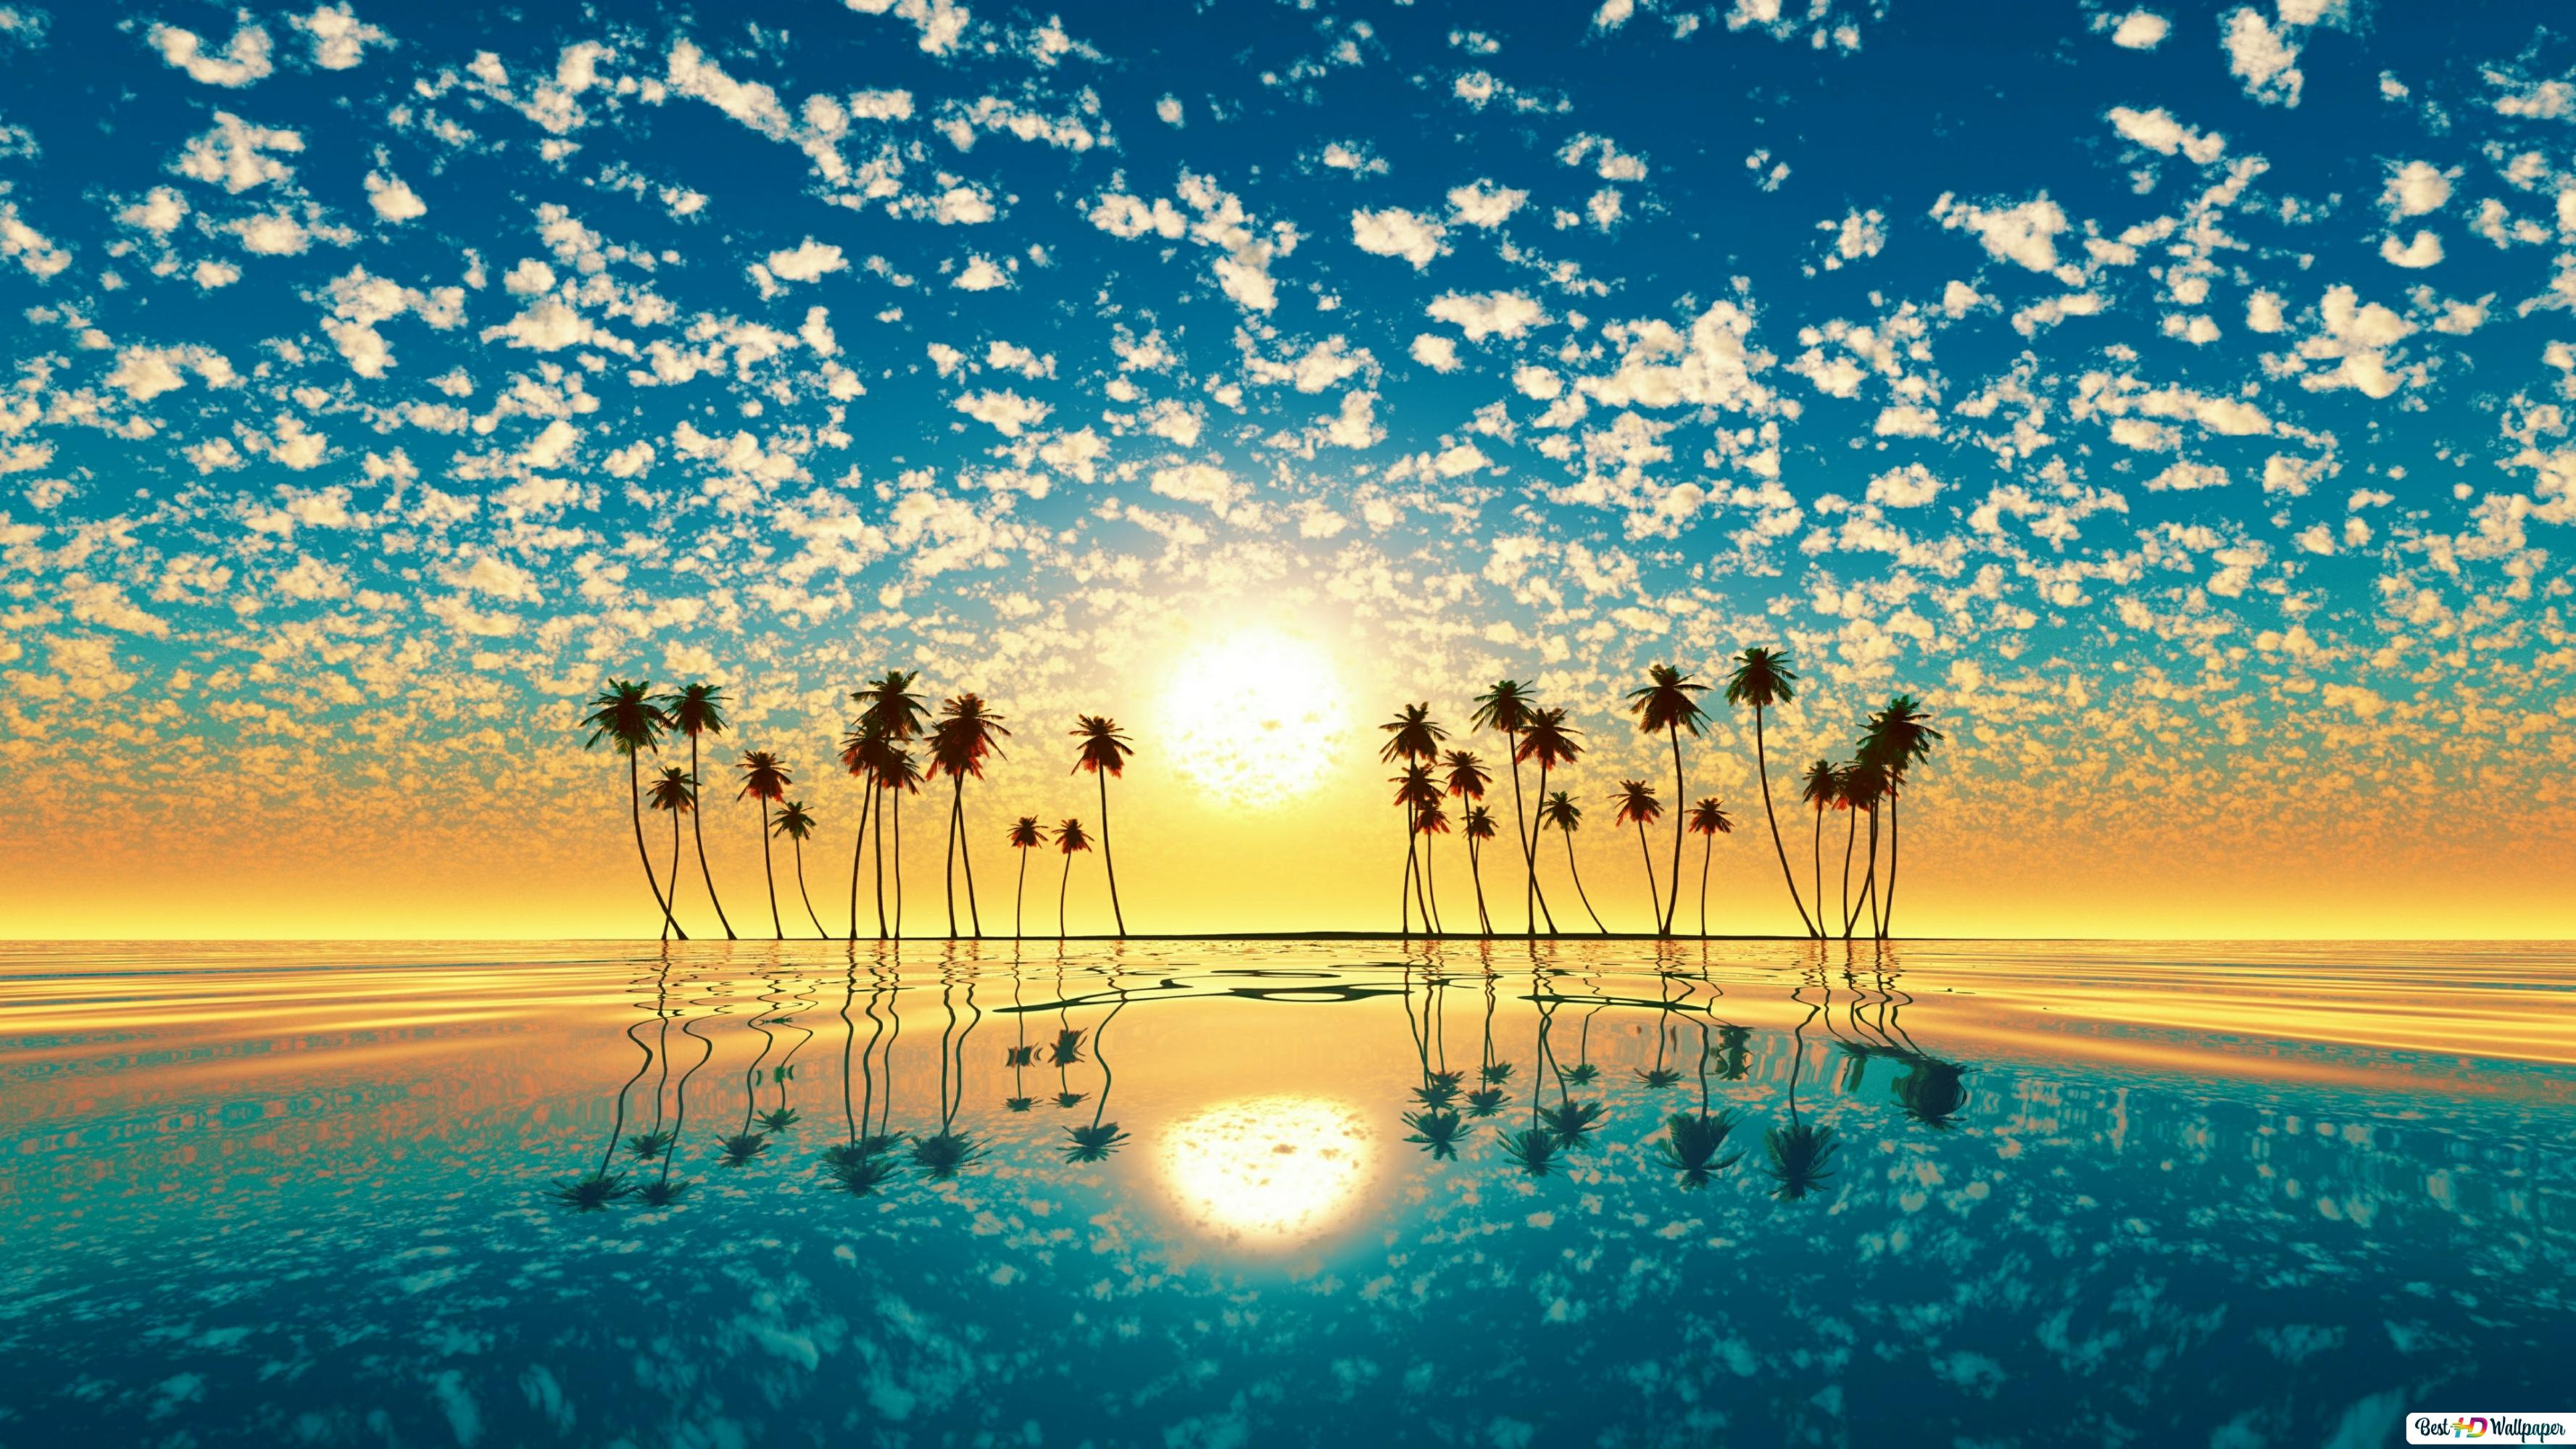 Sunset S Reflection Hd Wallpaper Download